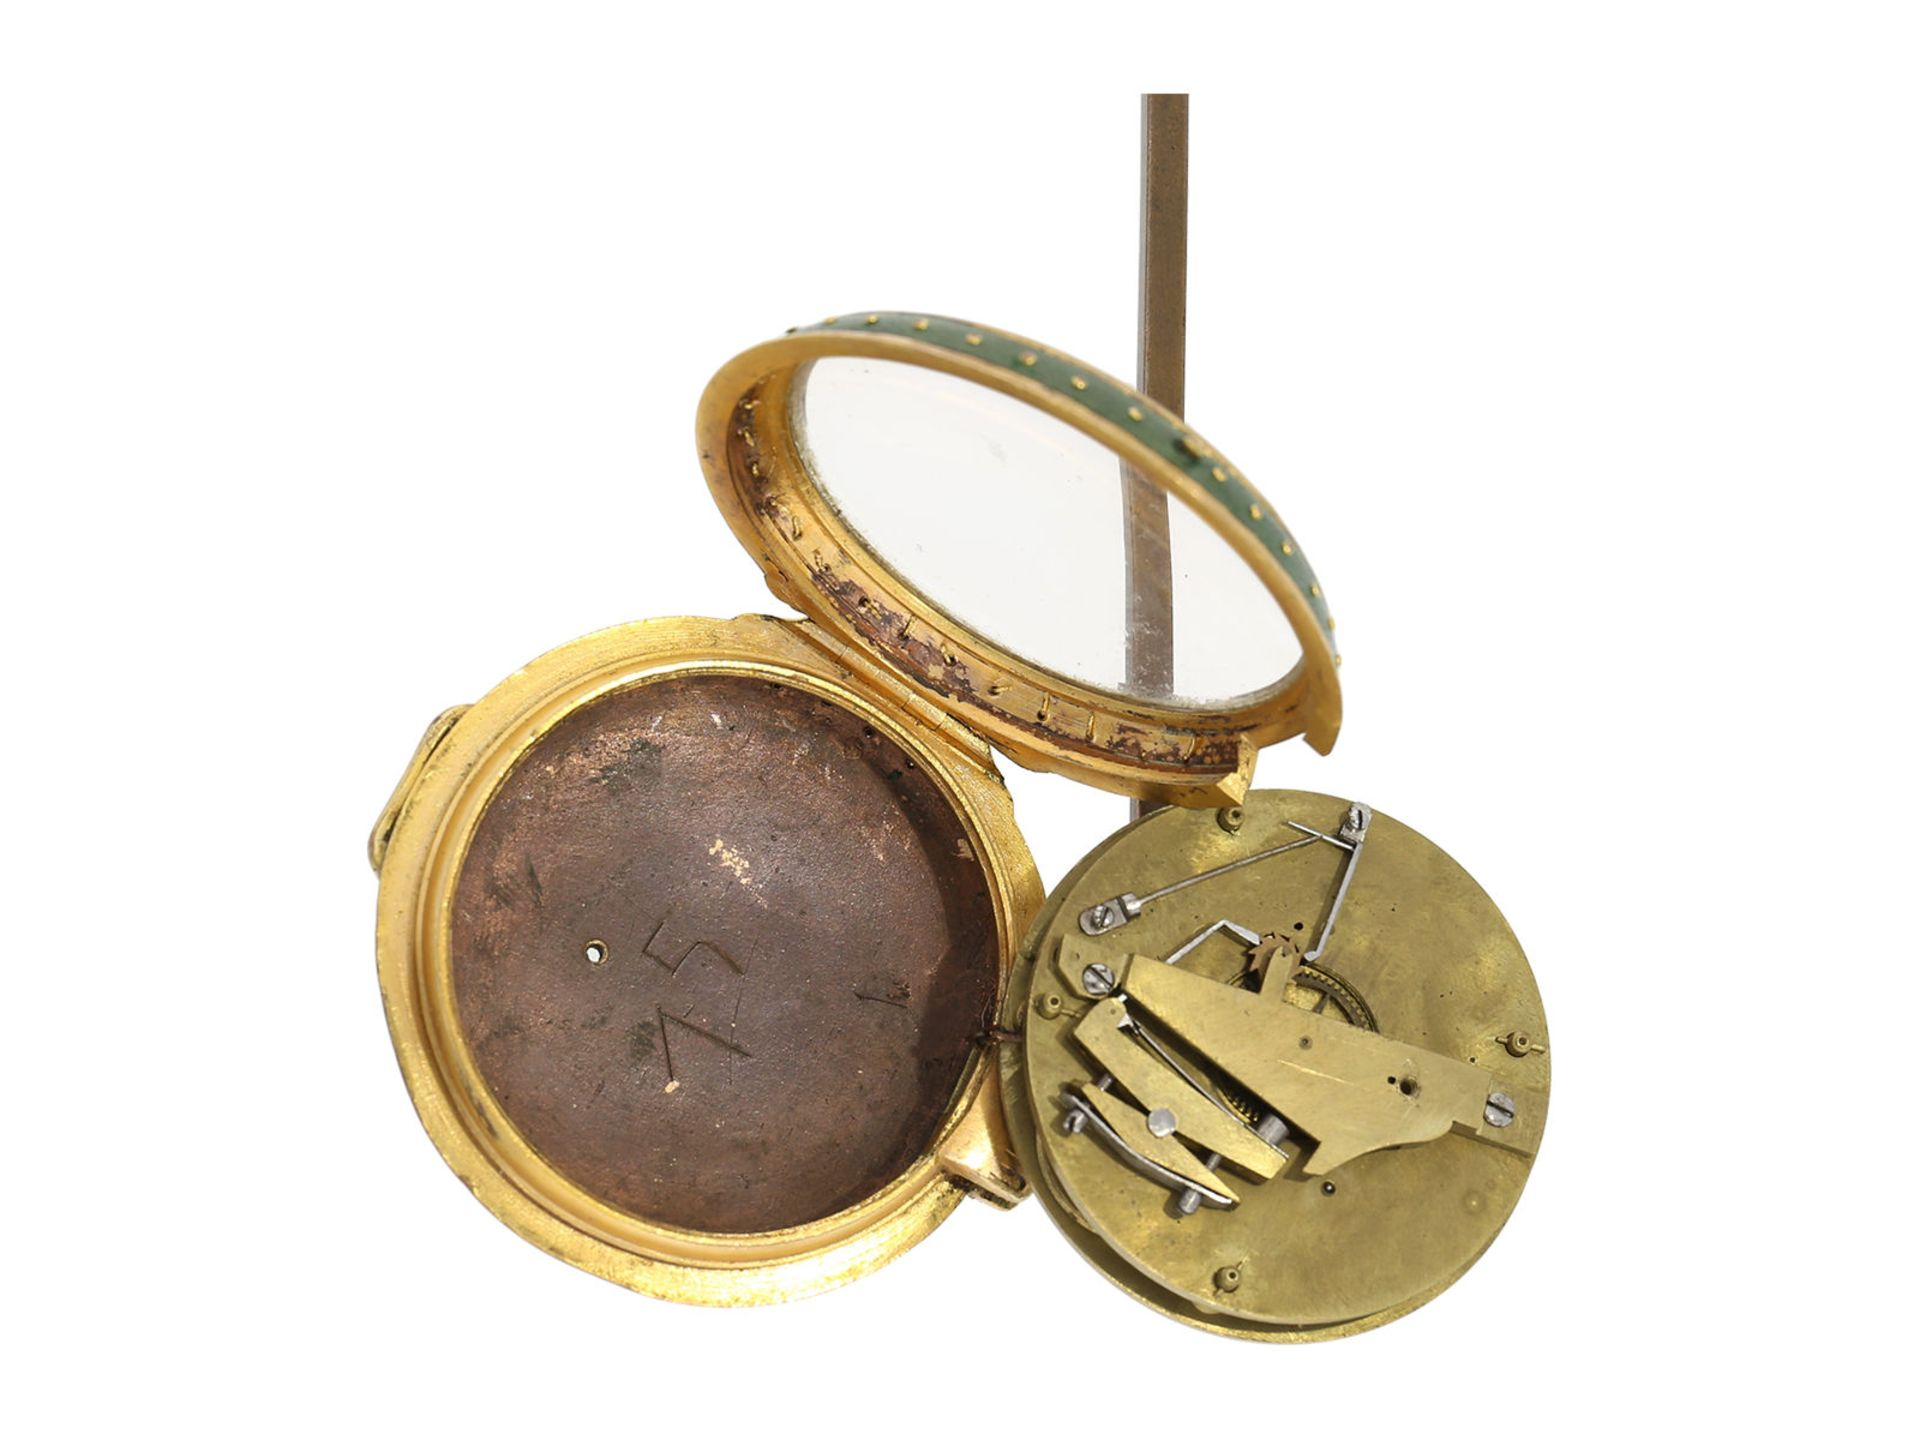 Pocket watch: very early and rare English pedometer, Spencer and Perkins London, ca. 1780 - Bild 2 aus 4